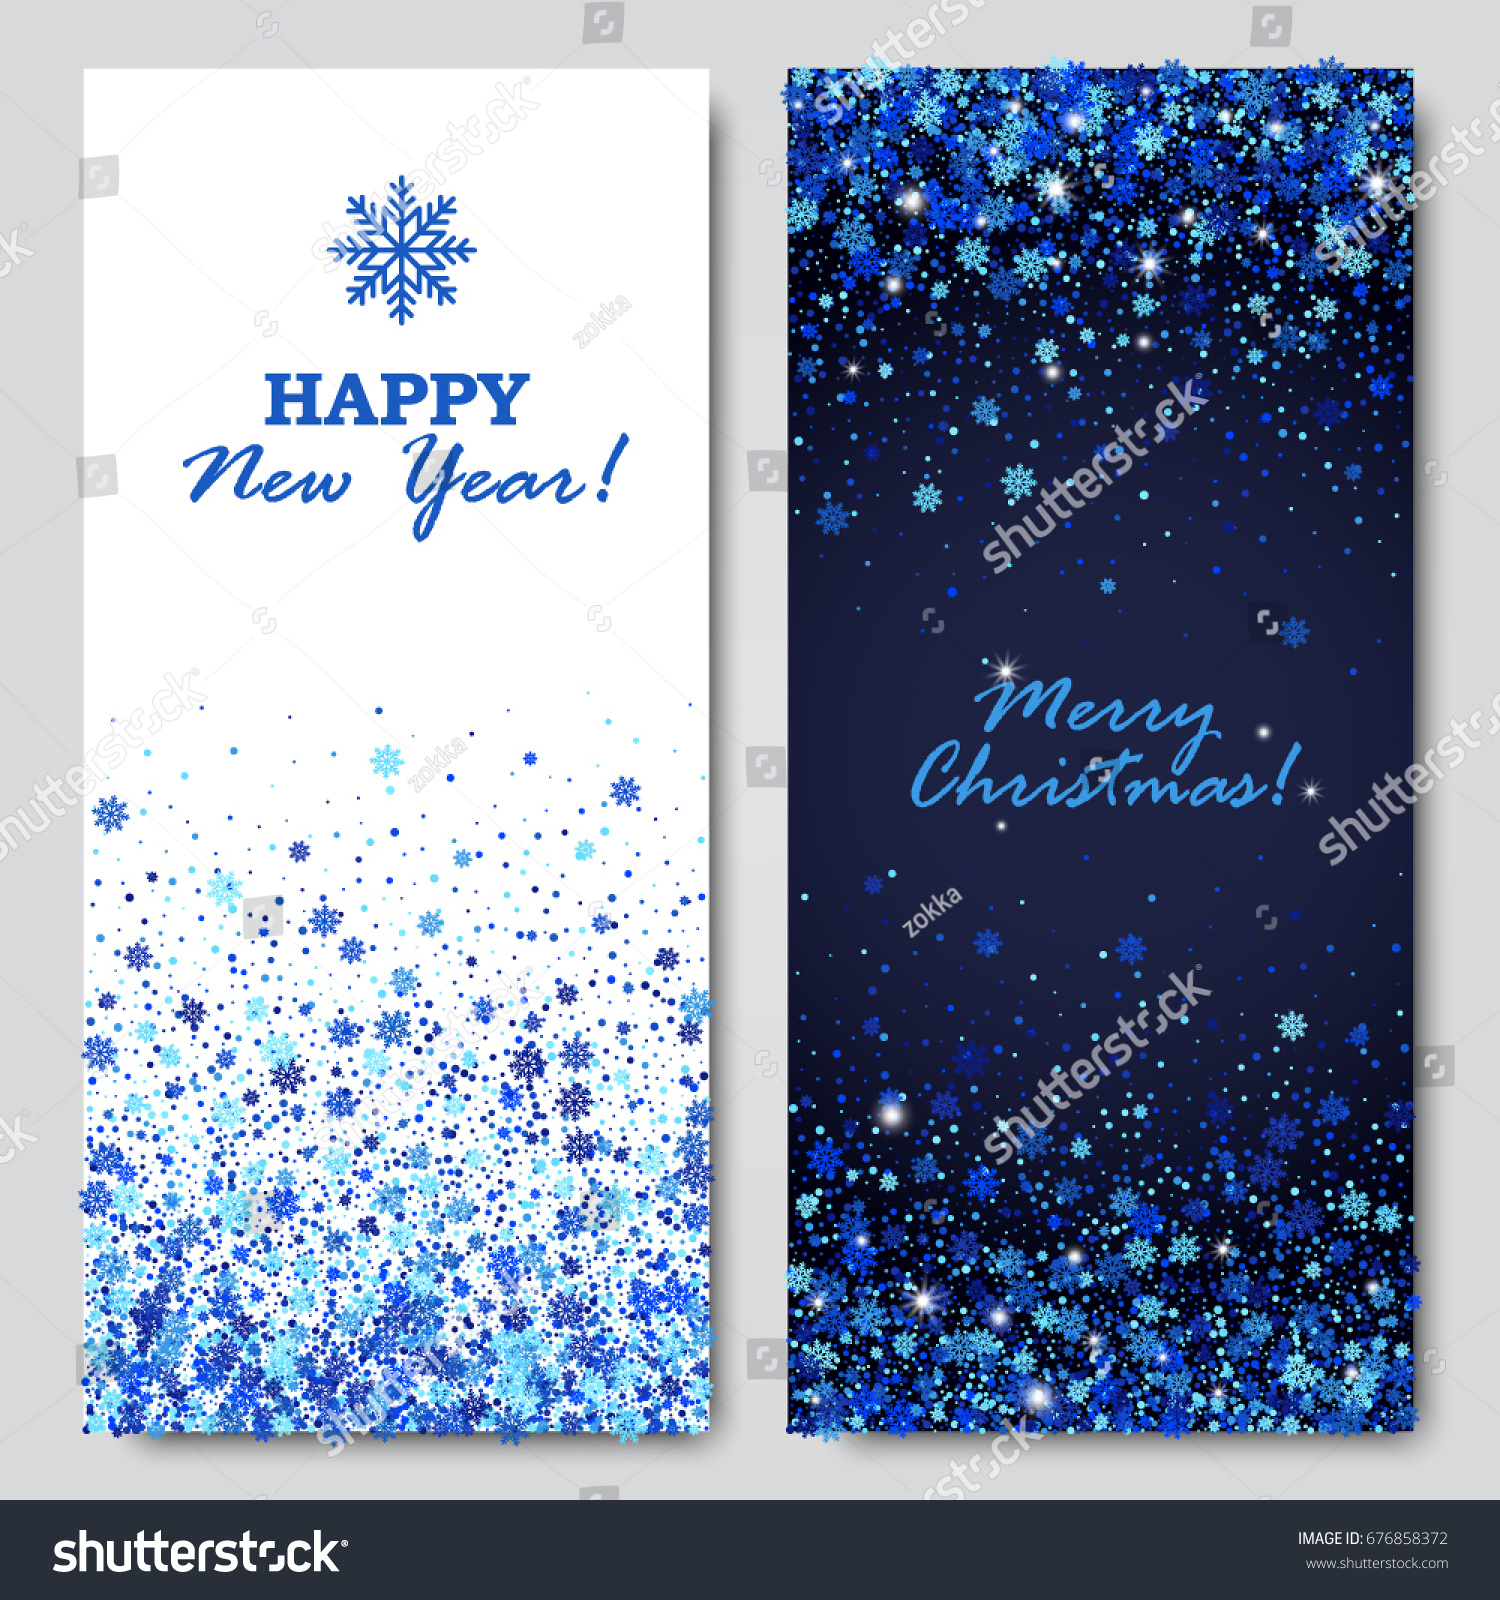 happy new year and merry christmas vertical banners set of scattered blue snowflakes and round confetti